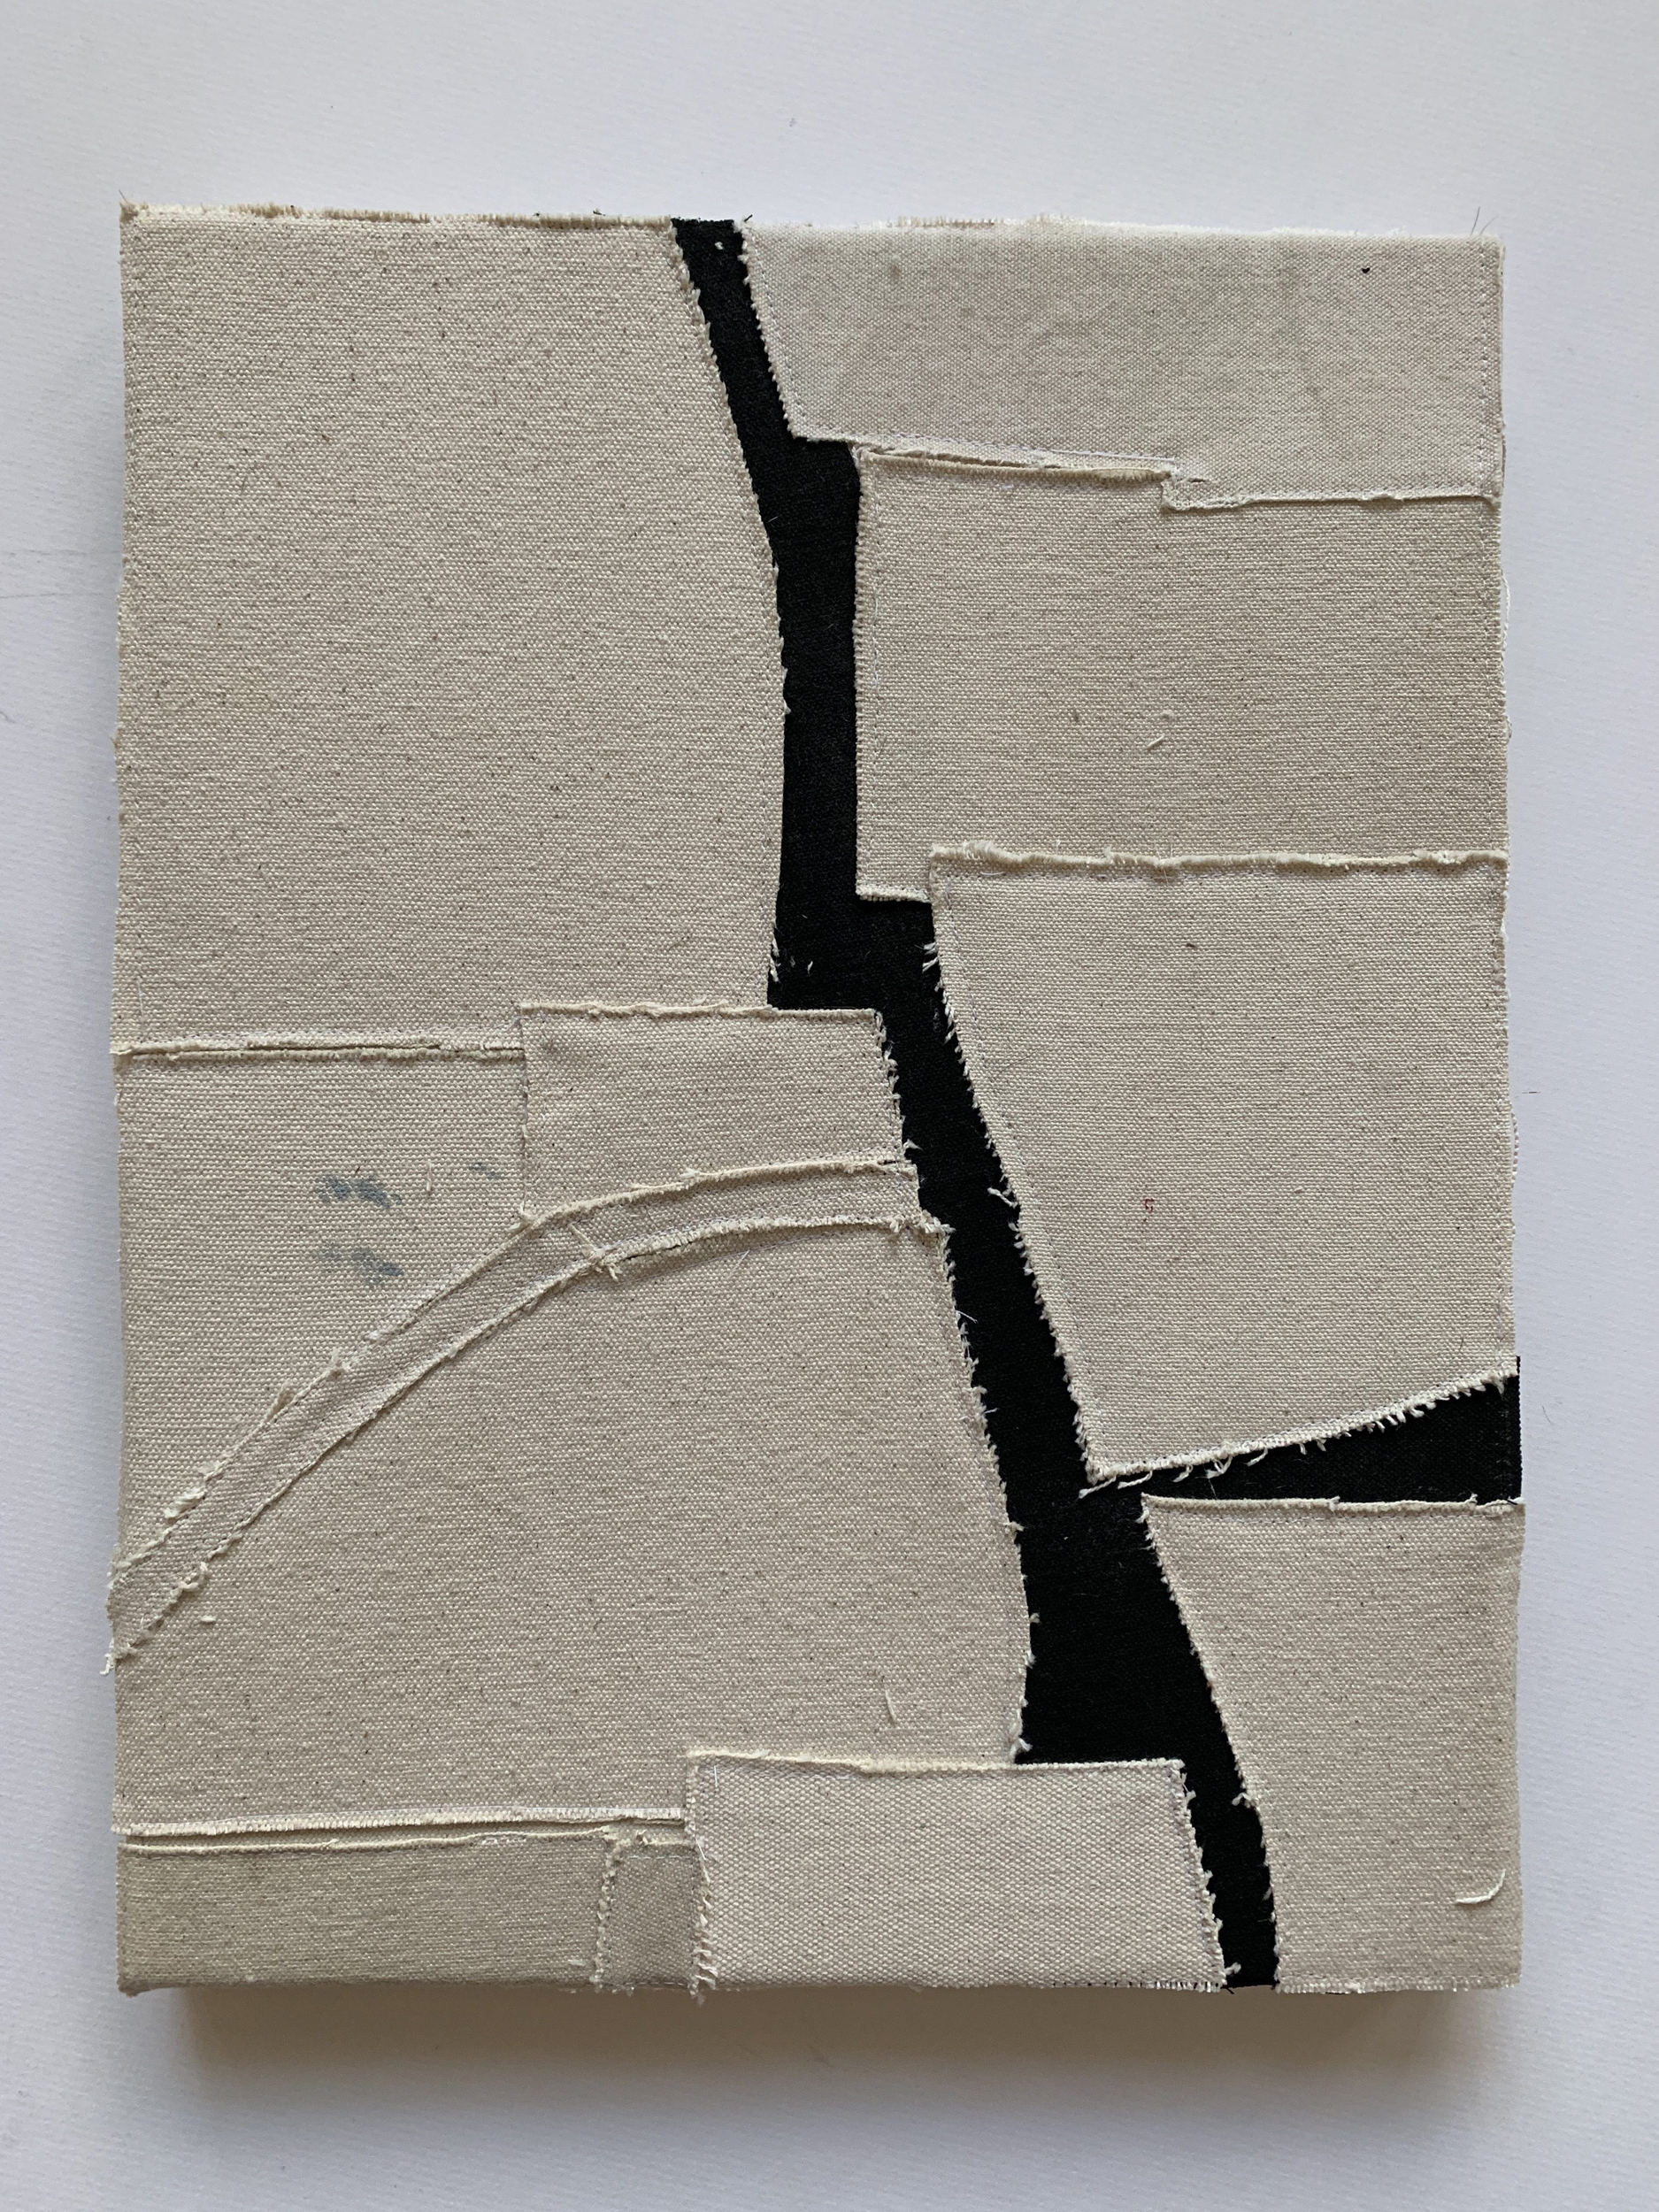 Jonathan Parker SC #96 , 2019 Acrylic on canvas, sewn 14 x 11 inches